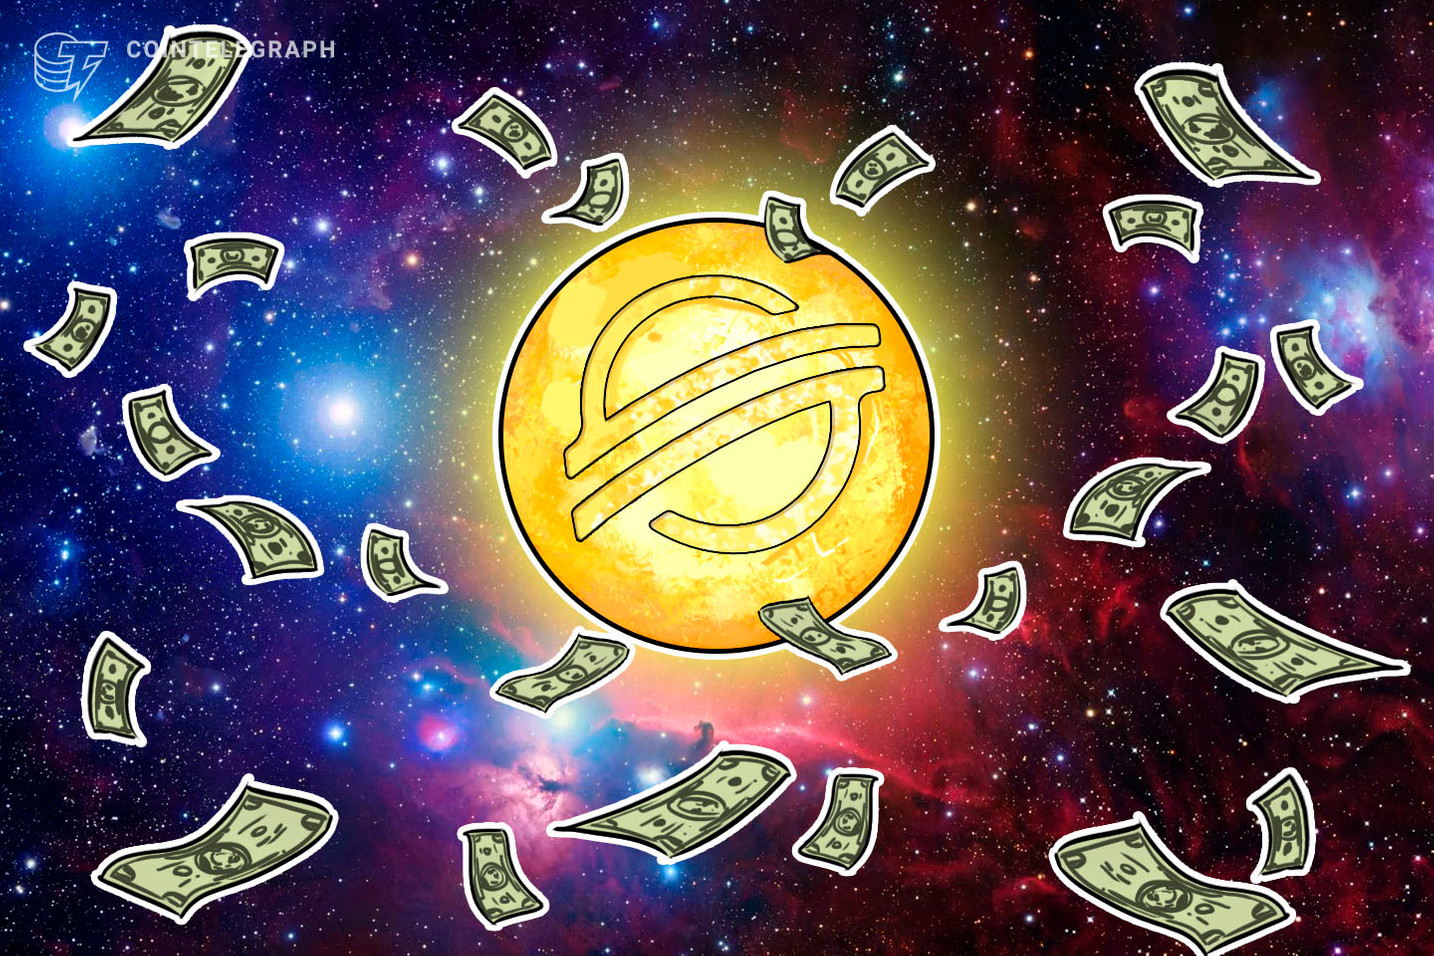 Asset Management Giant Wants Government Money Market Fund on Stellar